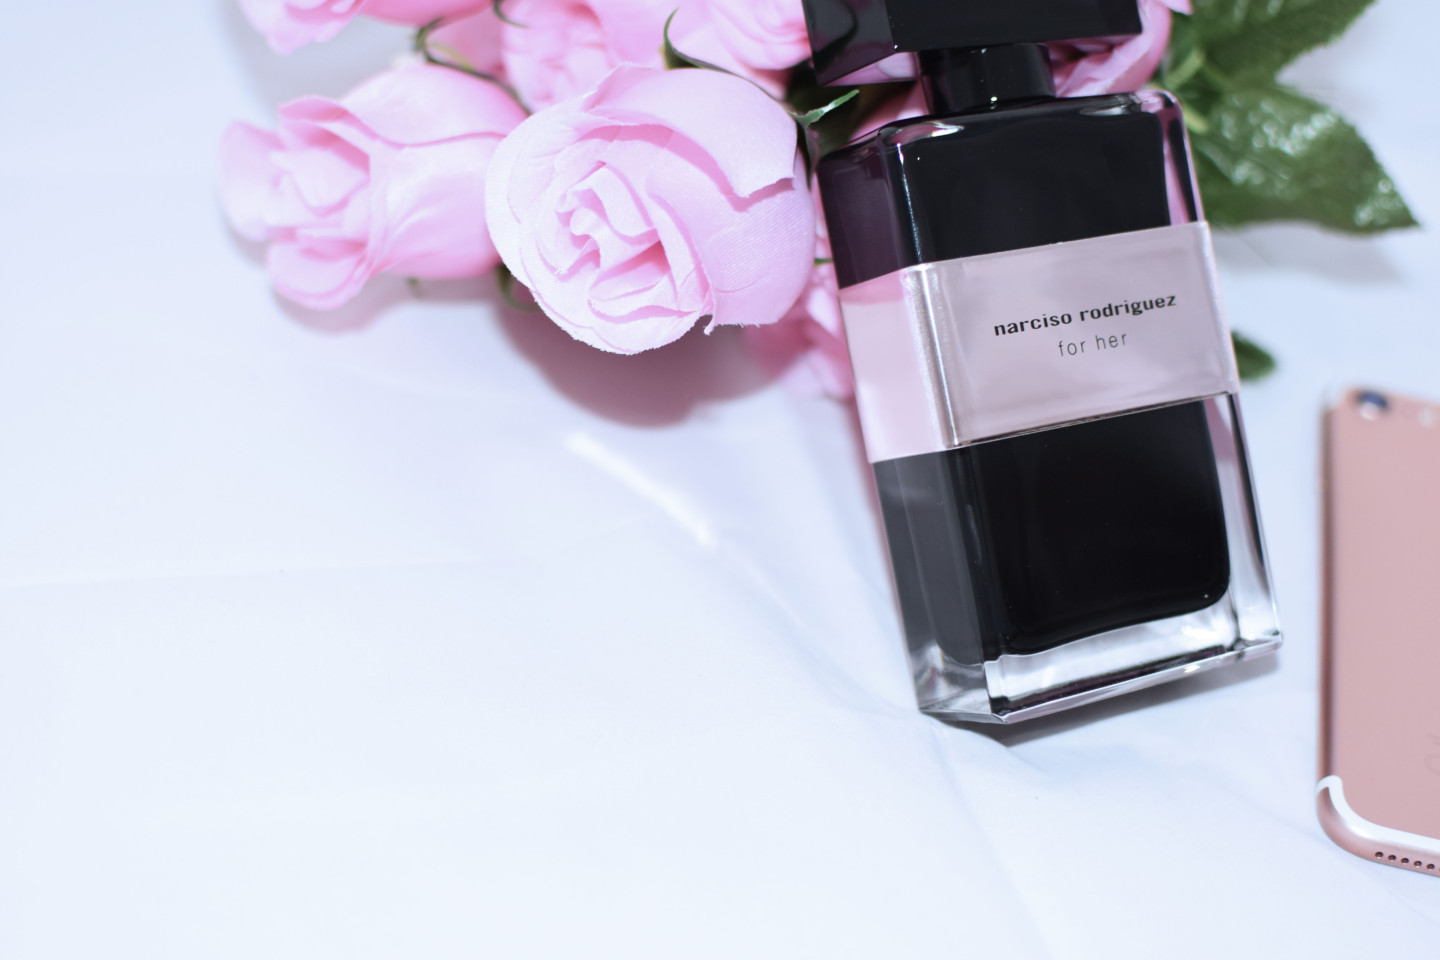 Narciso-Rodriguez-for-her-limited-edition-zagufashion-influencer